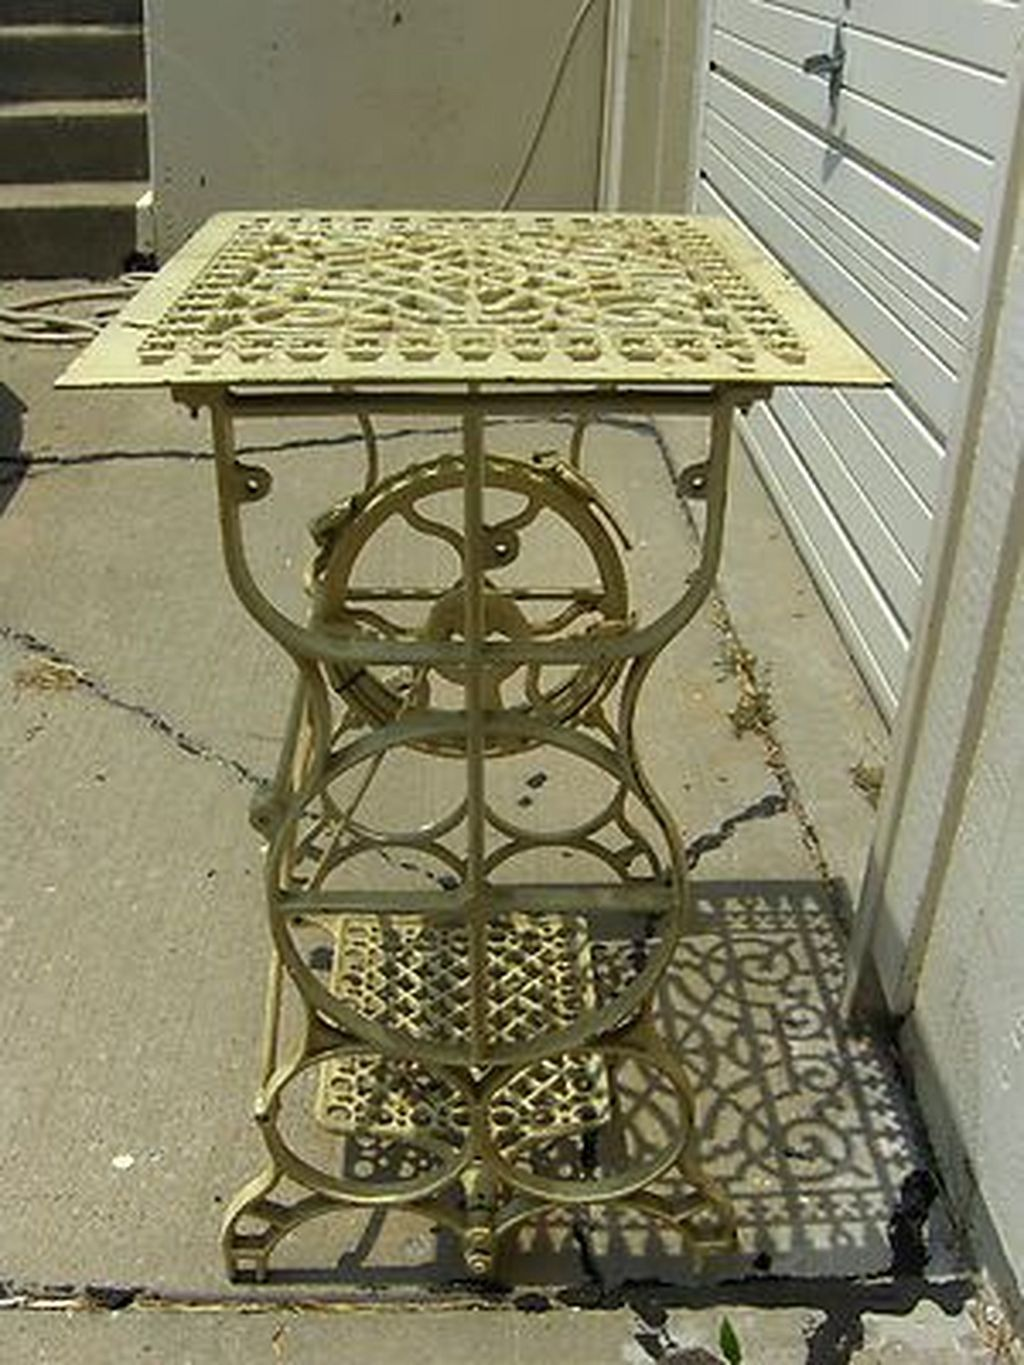 Singer Sewing Table Repurpose For In Home Ideas Nahtische Alter